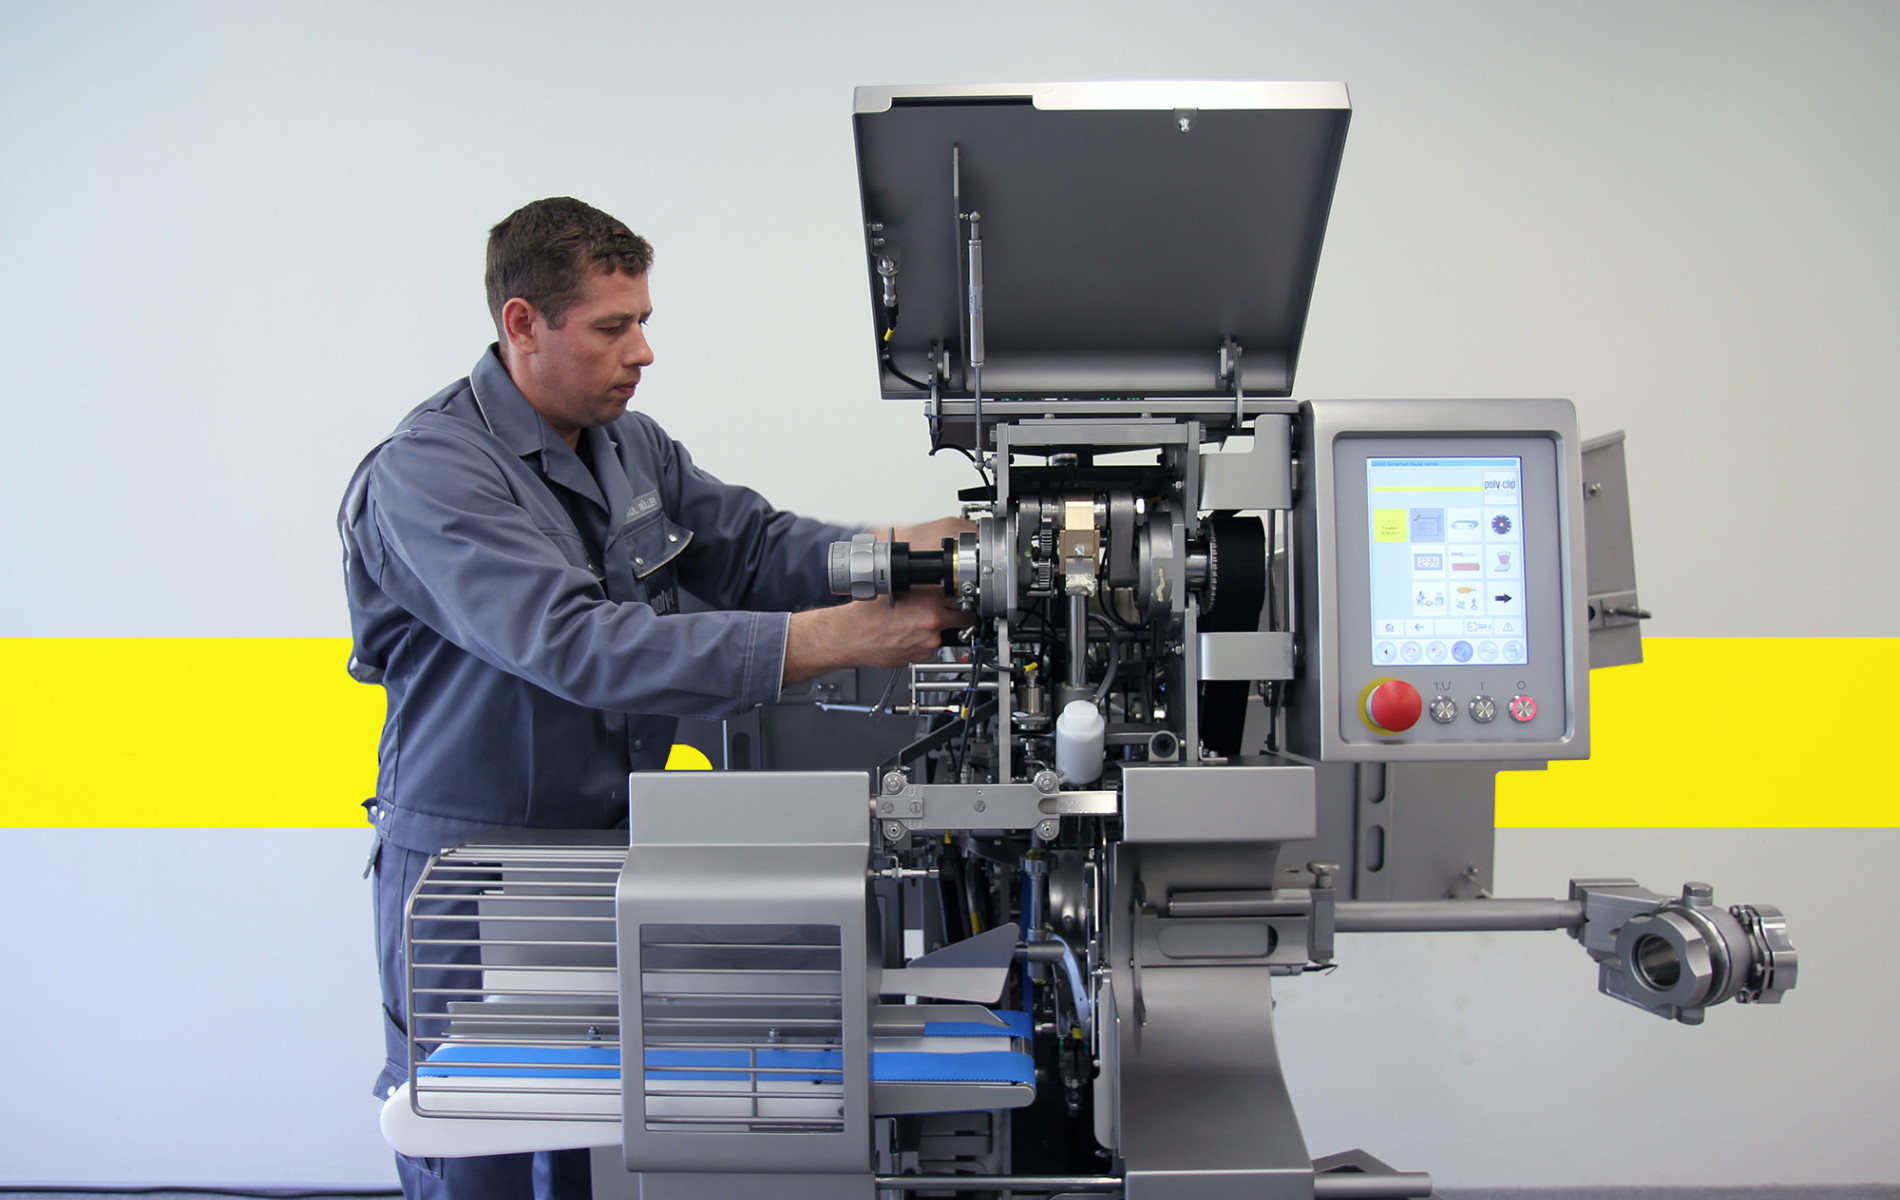 Service employee working on clipping machine